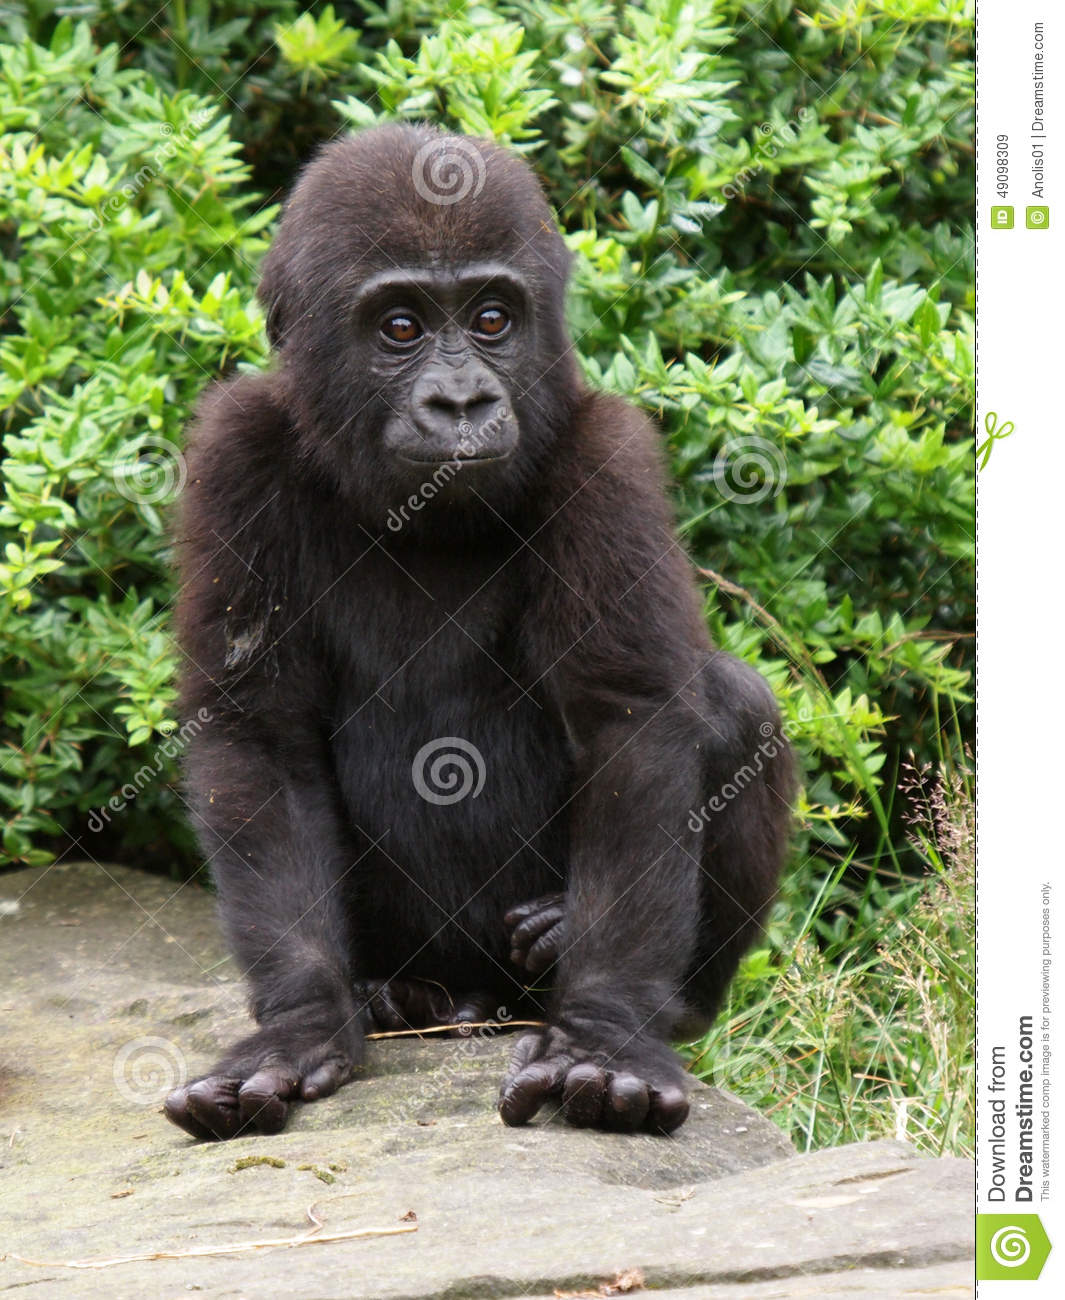 Download Gorilla youngster stock image. Image of closeup, background - 49098309